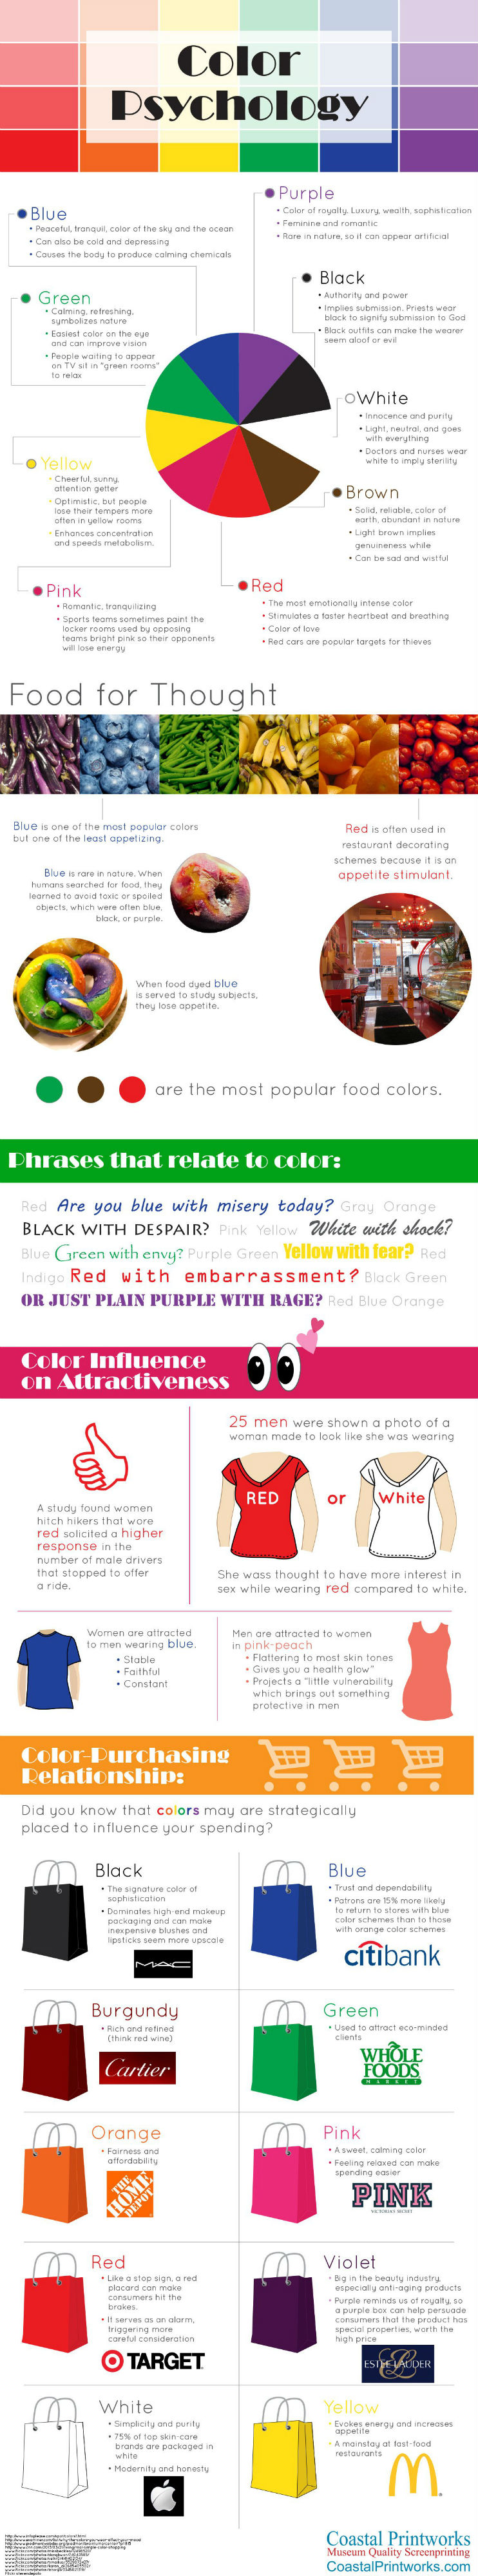 The Right Colors for Your Business [Infographic]